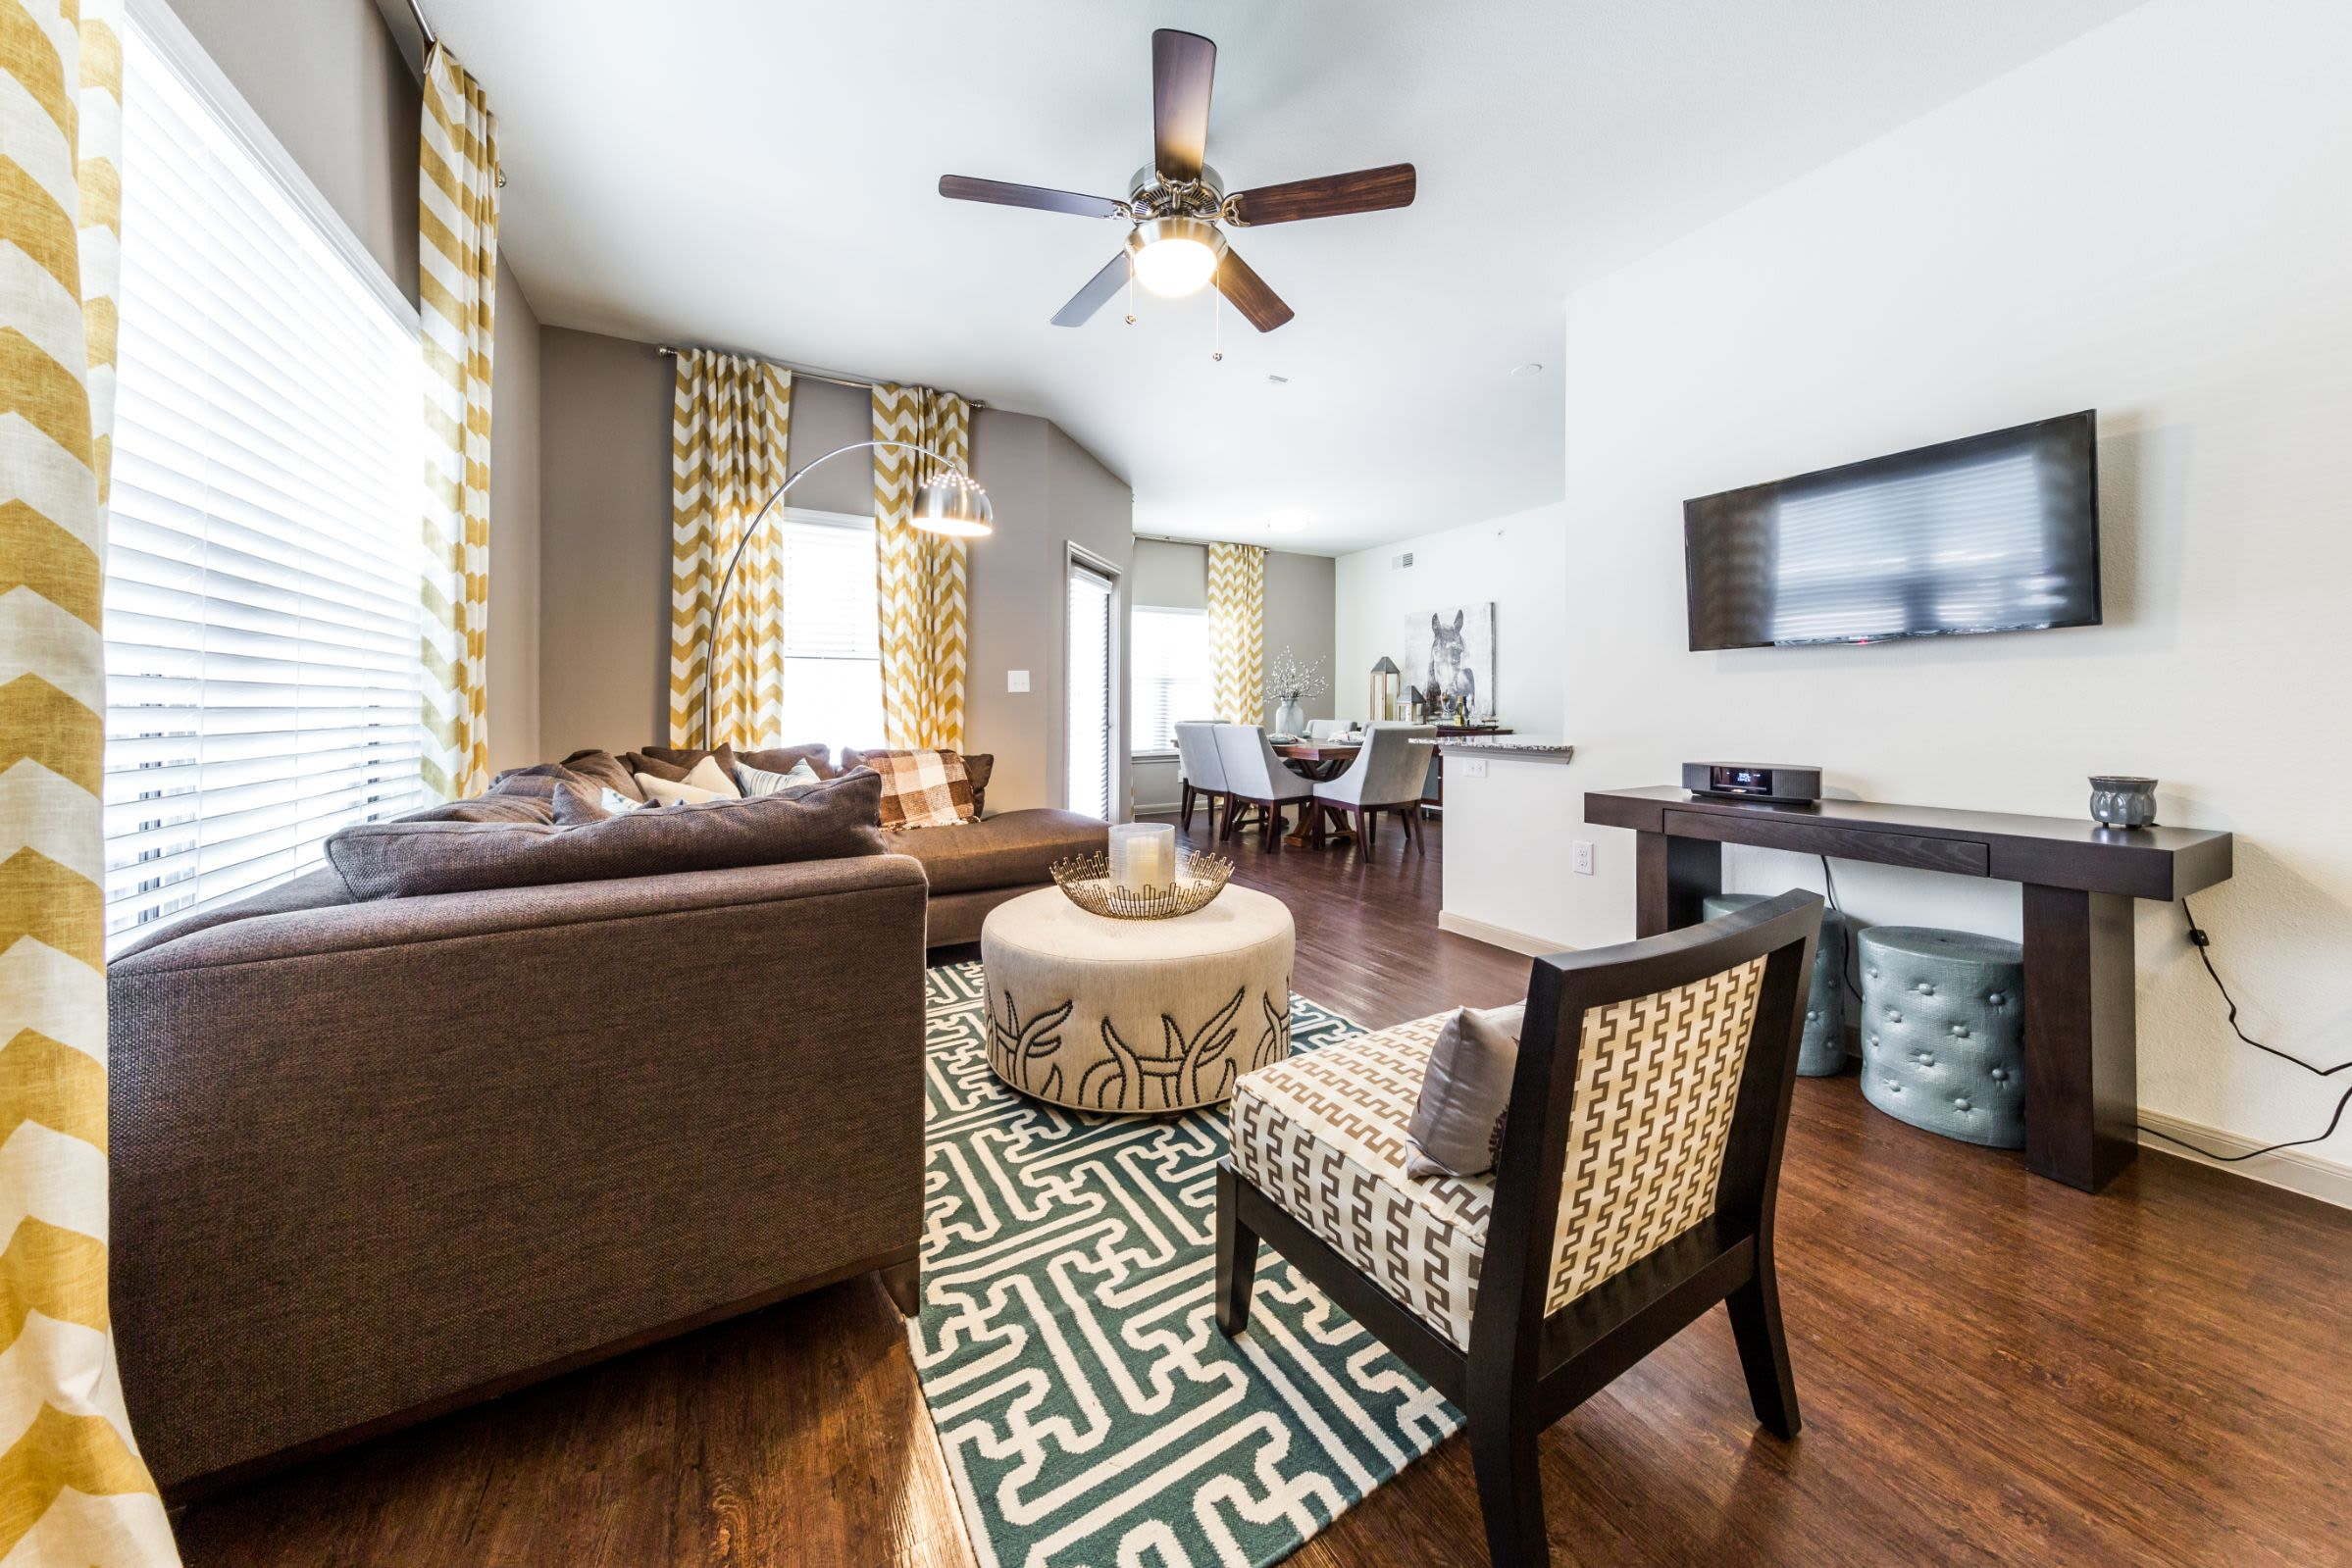 Living area with wood floors and a ceiling fan at Marquis on Lakeline in Cedar Park, Texas